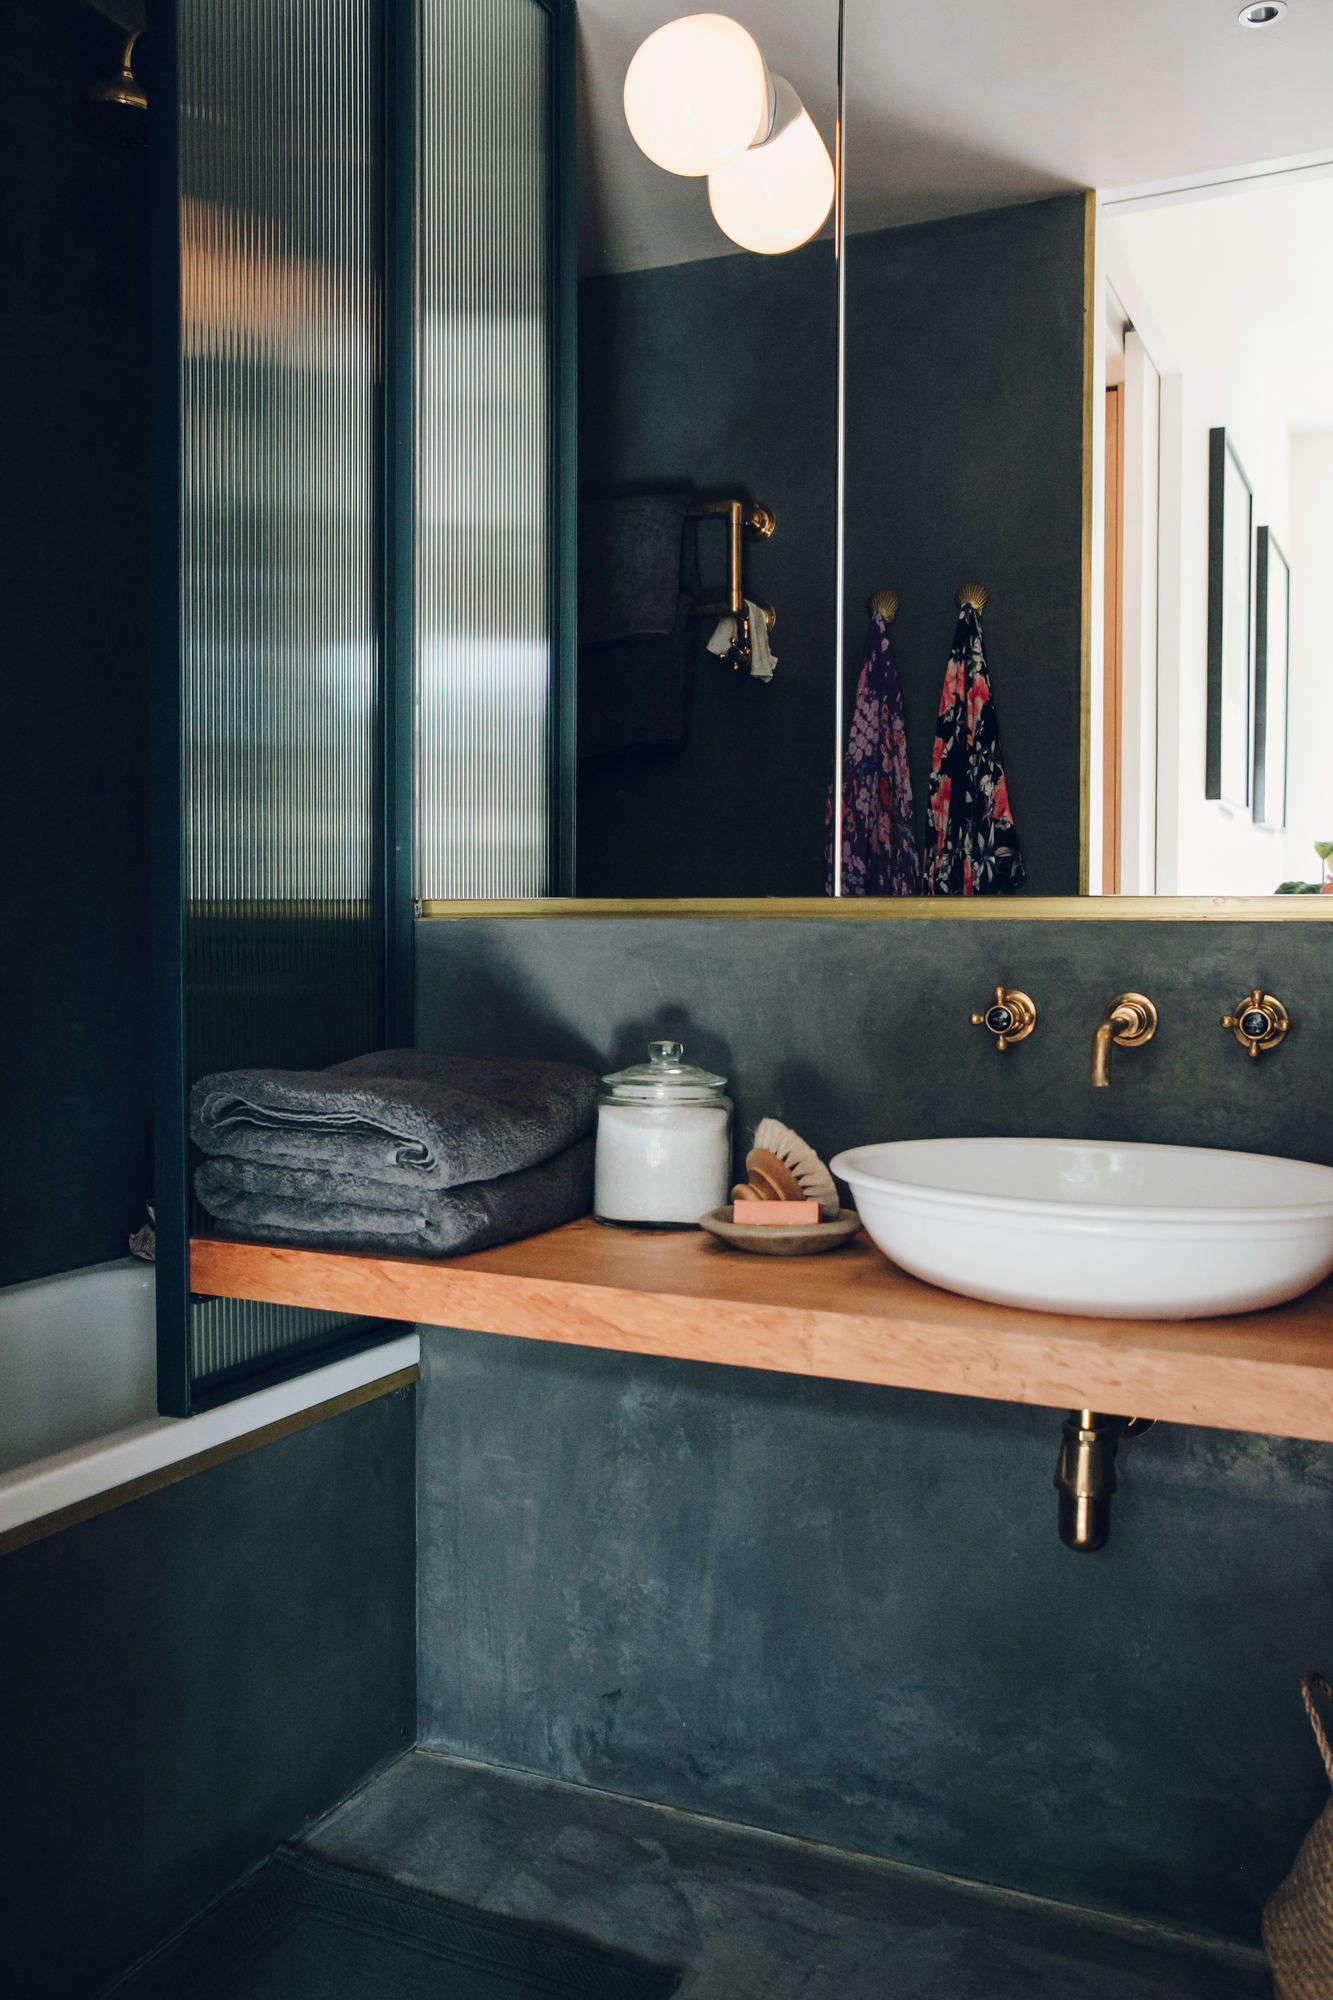 """The shower doorwas a custom design;it's fixed on oneend to support the custom countertop, made of a single piece of Monterey cypress wood. """"While coming upwith the materialpalette, we were drawn to thebeauty of combining dark gray tadelakt with the warm wood of thecountertop, finished off with brass detailing."""""""